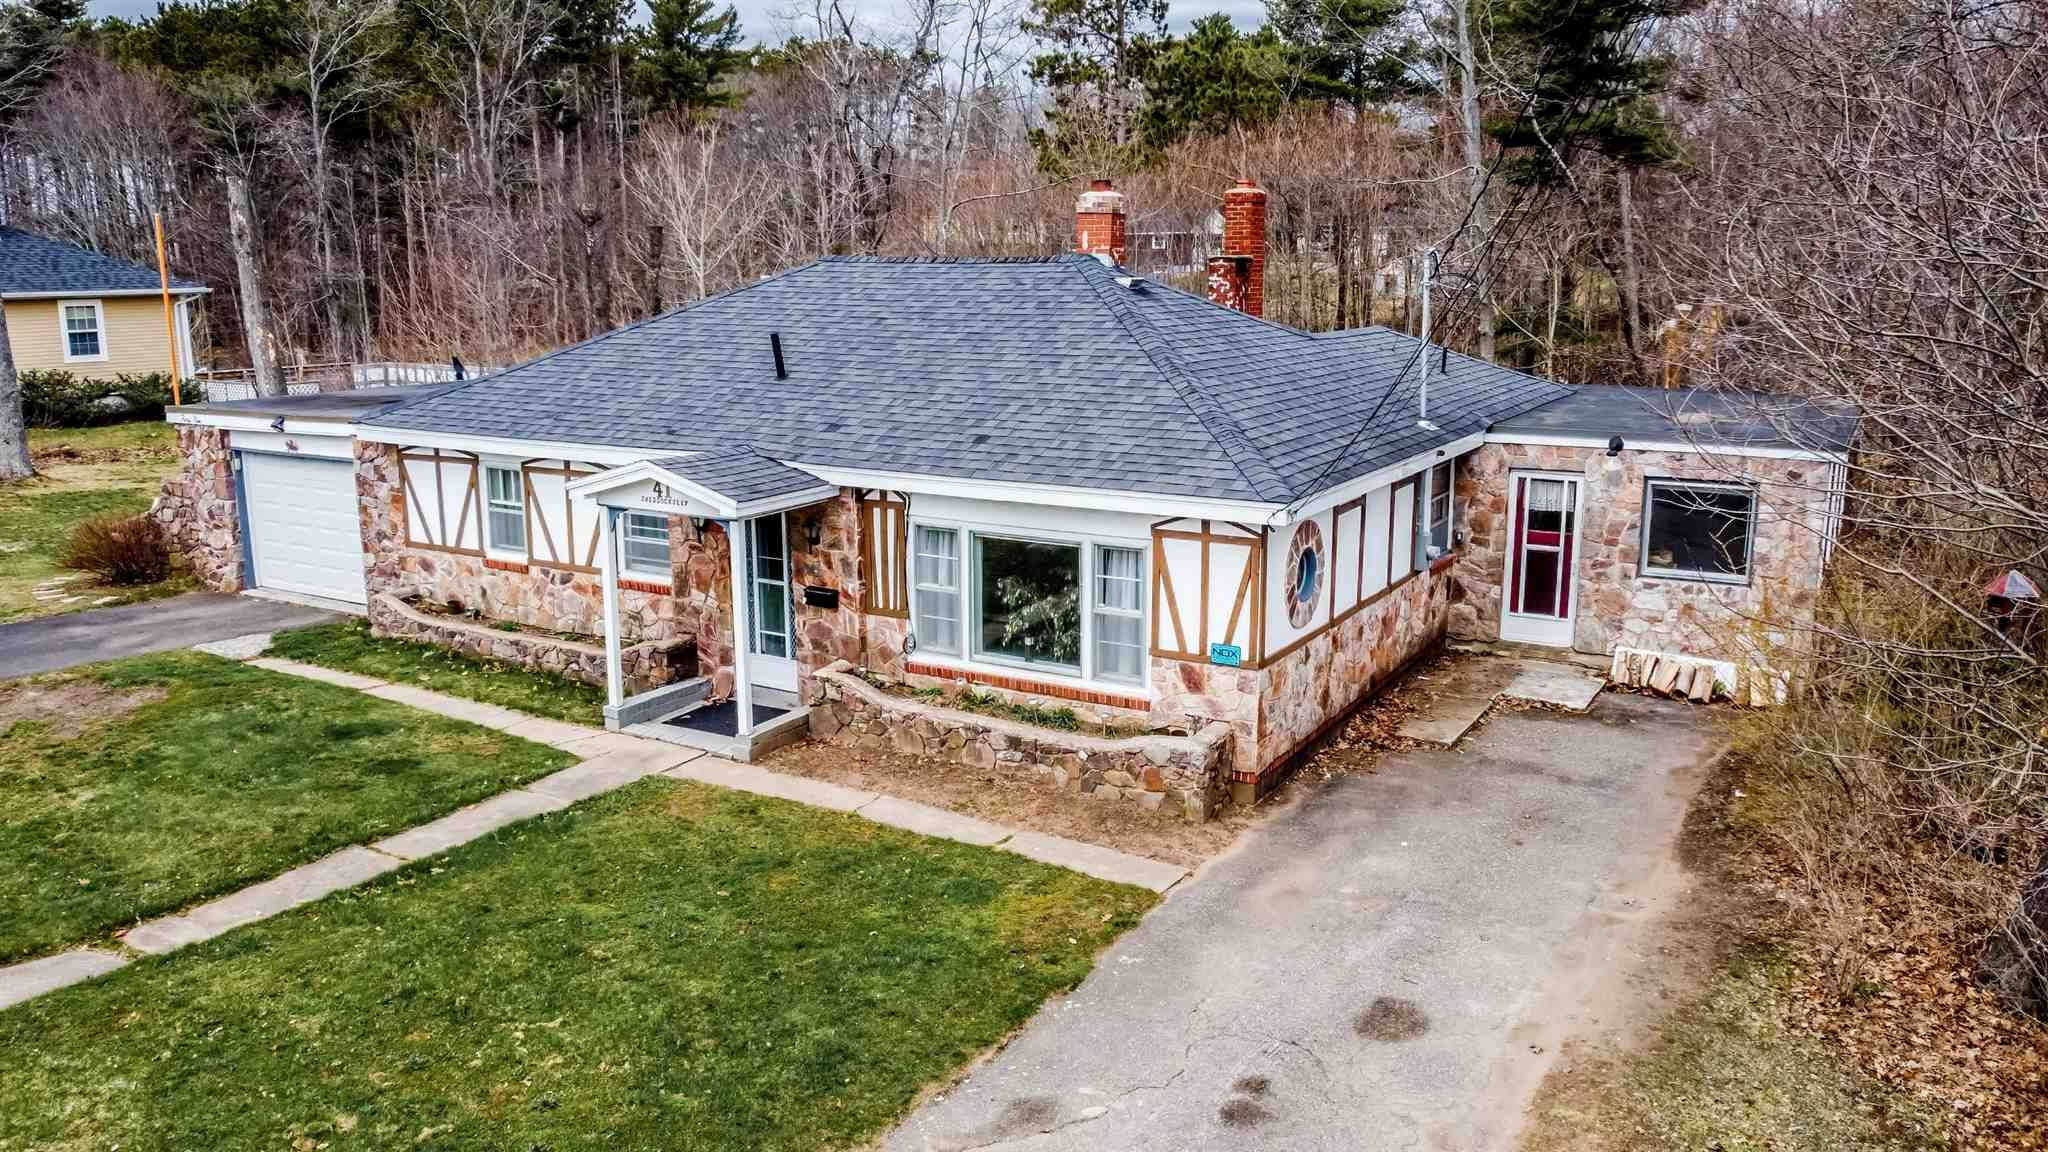 Main Photo: 41 Woodworth Road in Kentville: 404-Kings County Residential for sale (Annapolis Valley)  : MLS®# 202108532